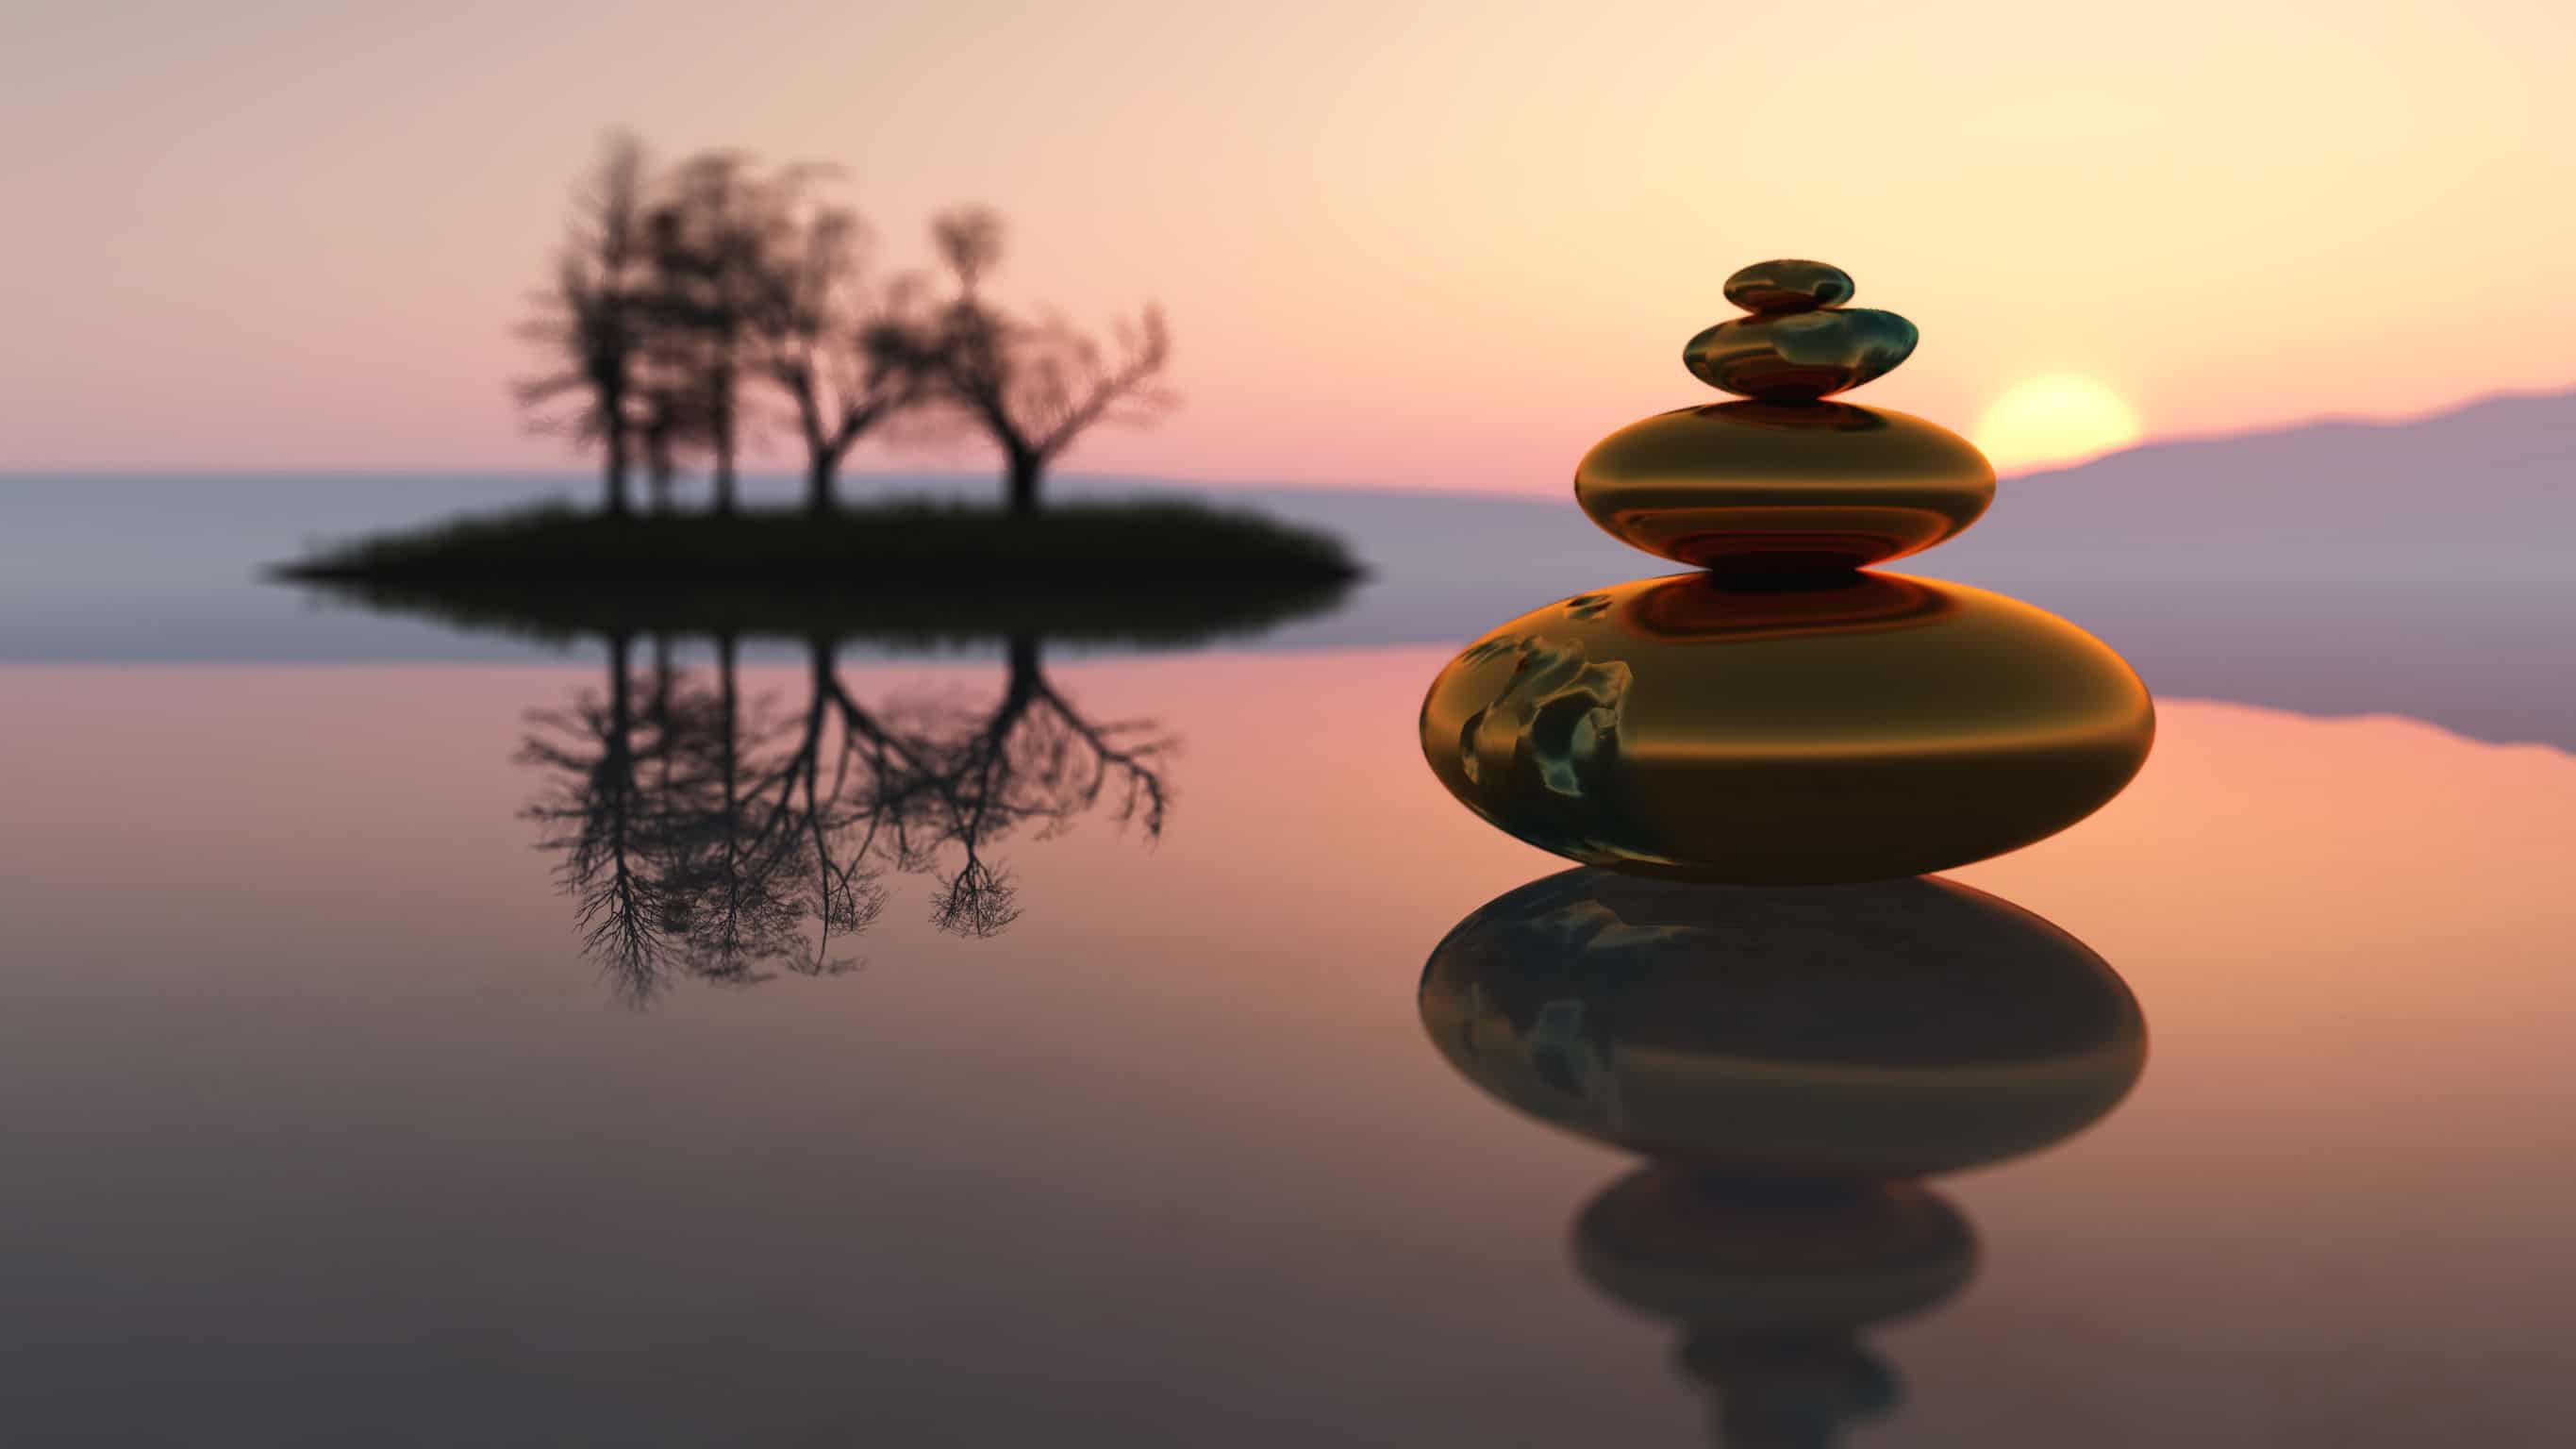 The Quiet Mind – Why Is Meditation Universally Appealing?